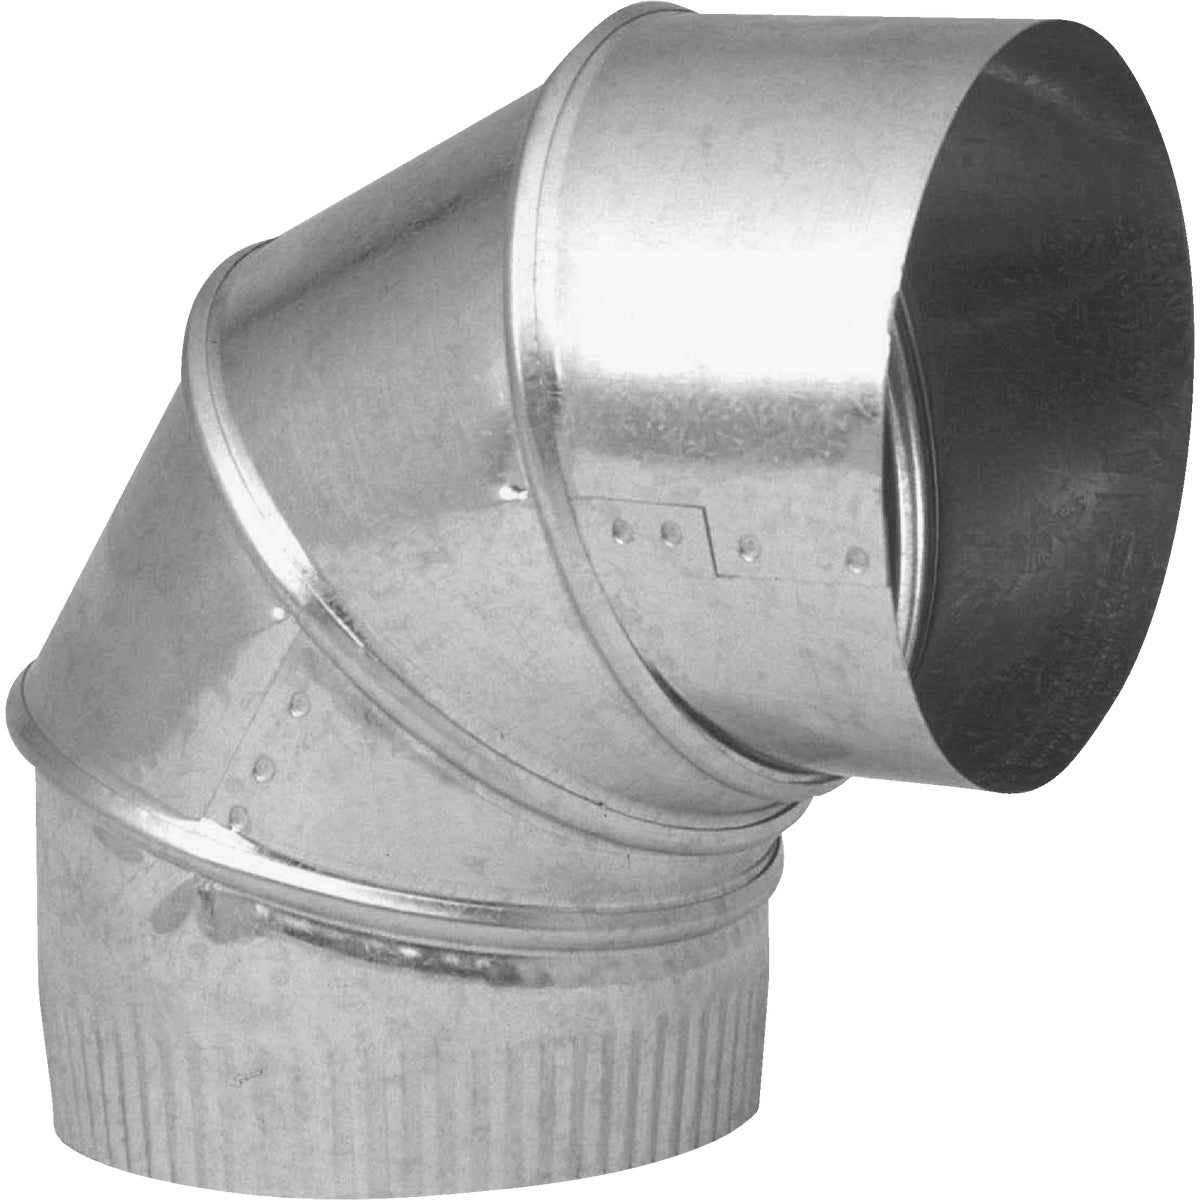 "8"" 30GA GALV ADJ ELBOW - GV1330-C by Imperial Mfg Group"